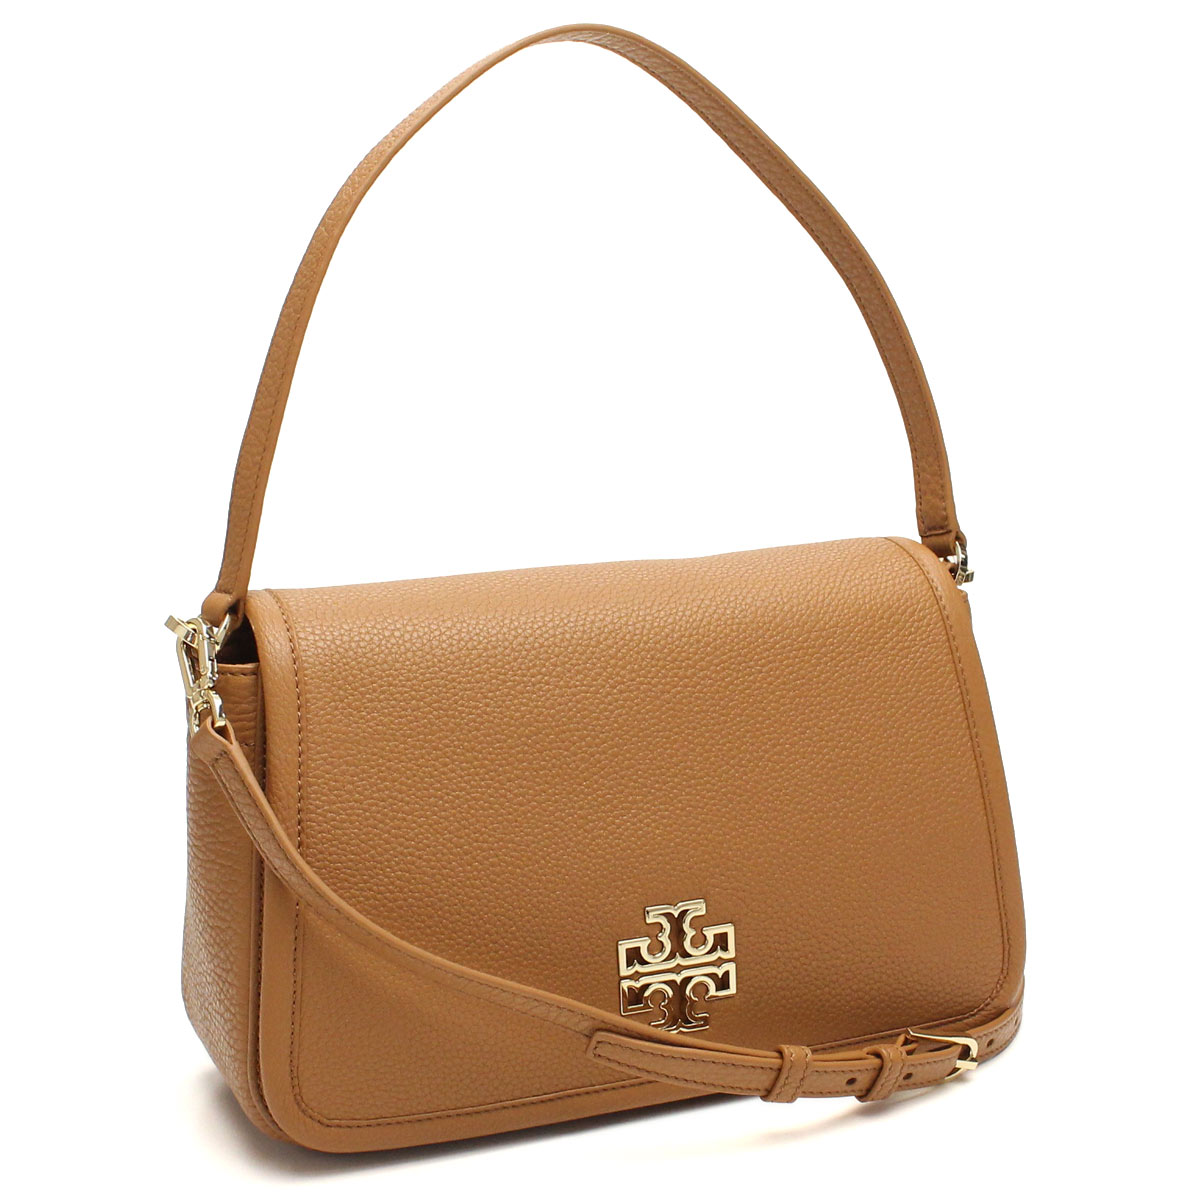 Bighit The Total Brand Wholesale Tory Burch Britten Furla Metropolis Bronze Authentic Semishoulder 29094 209 Bark Brown Taxfree Send By Ems A New Item